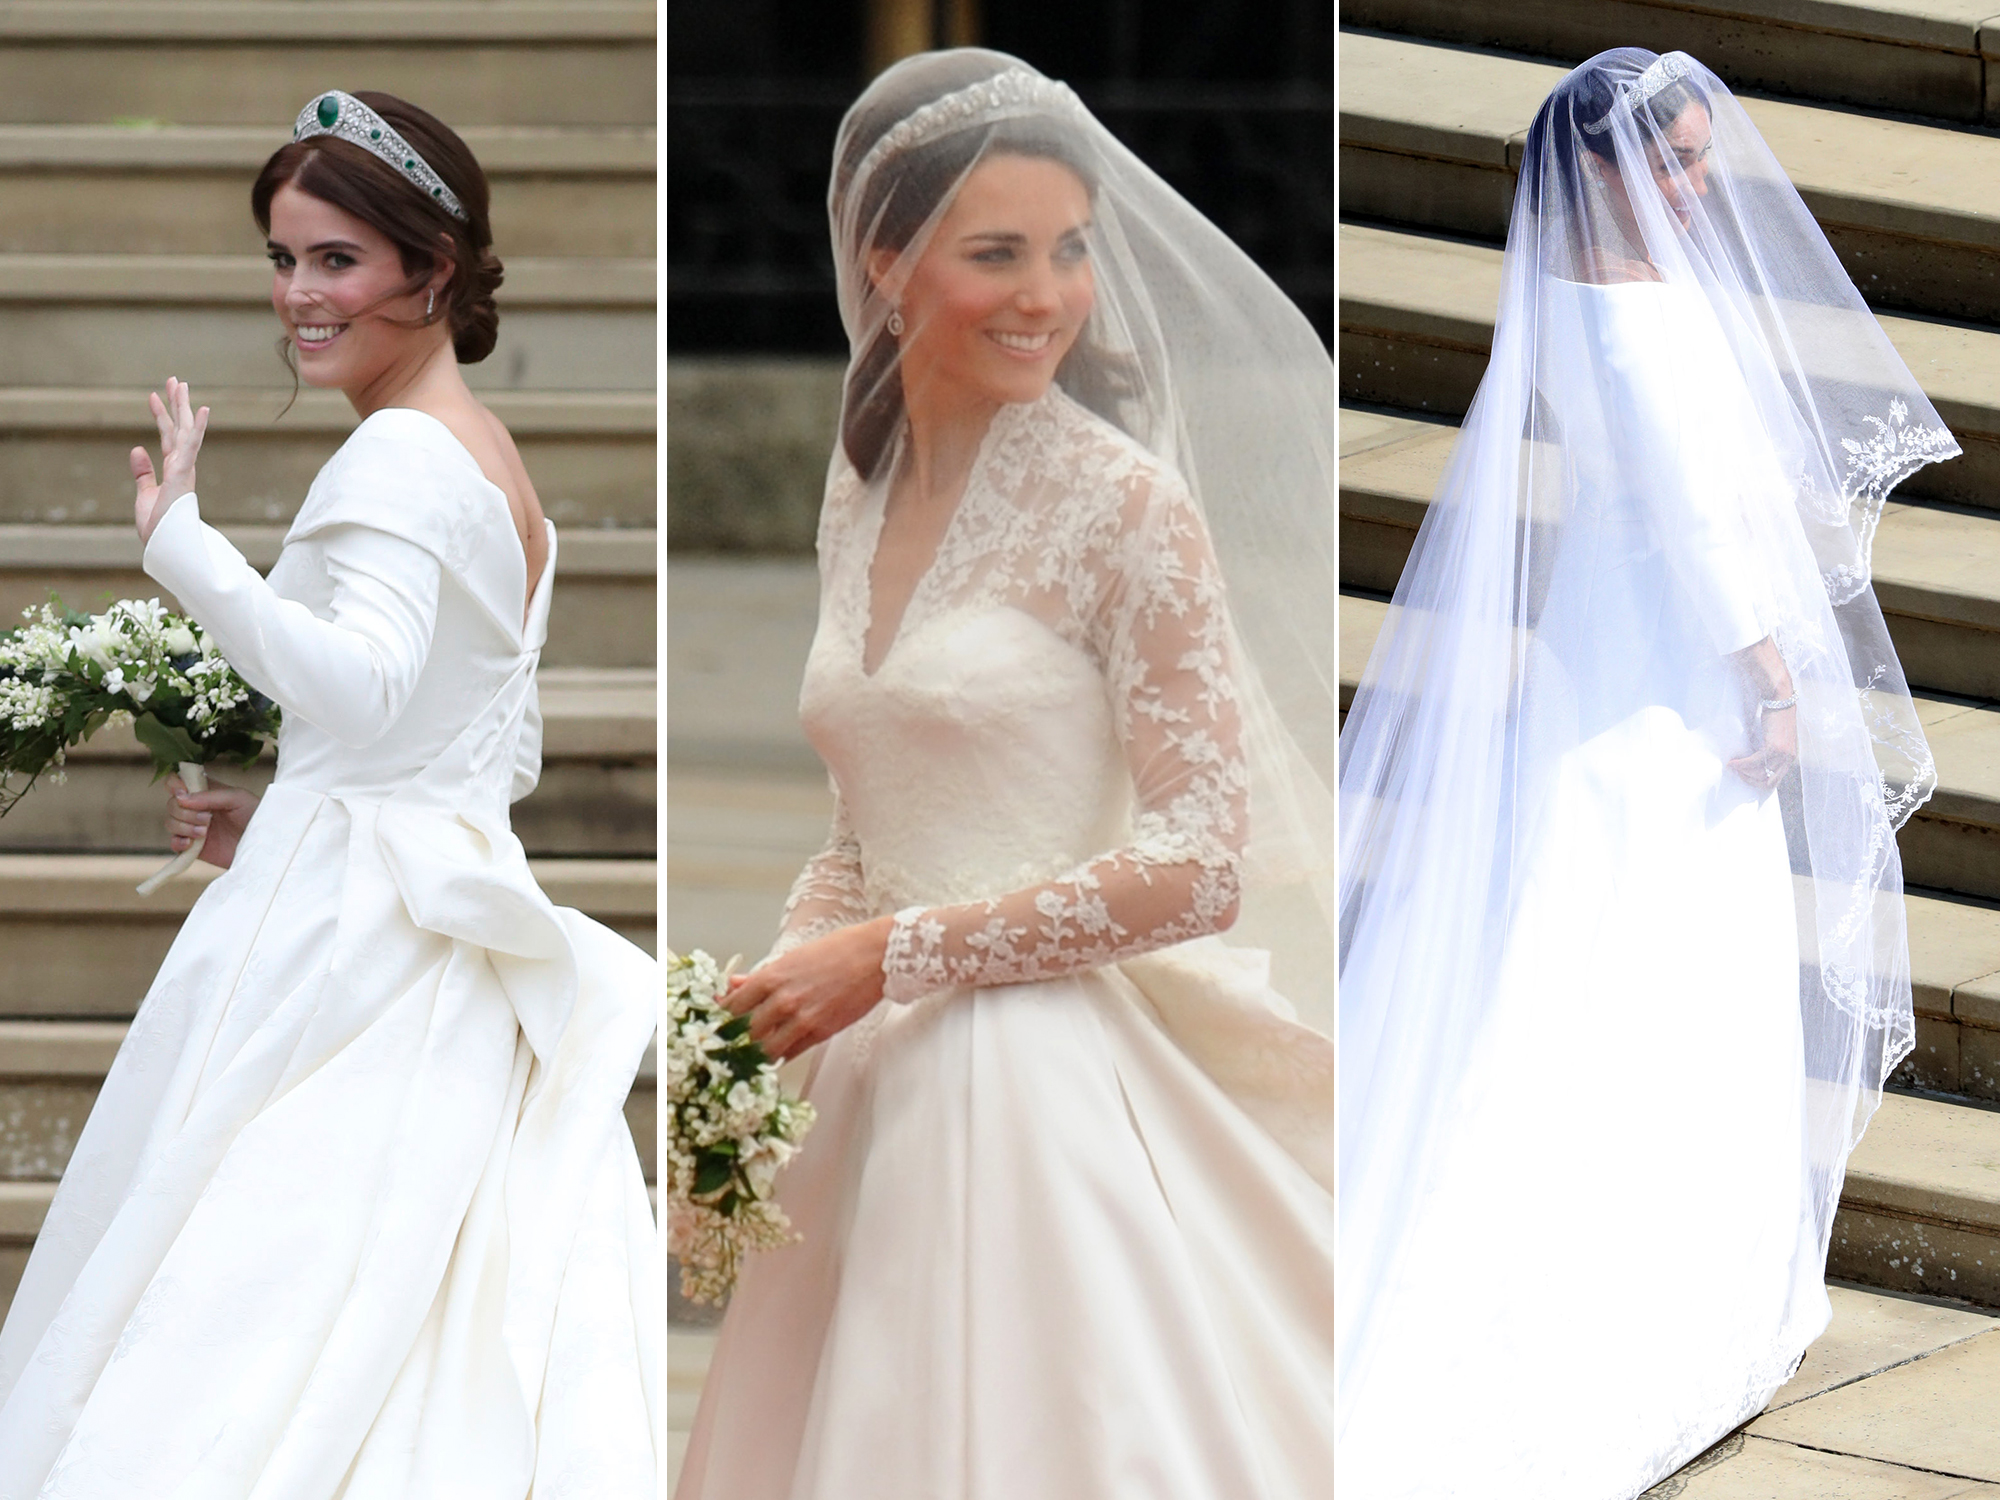 How Princess Eugenie's Wedding Dress Differs from Kate Middleton and Meghan Markle's